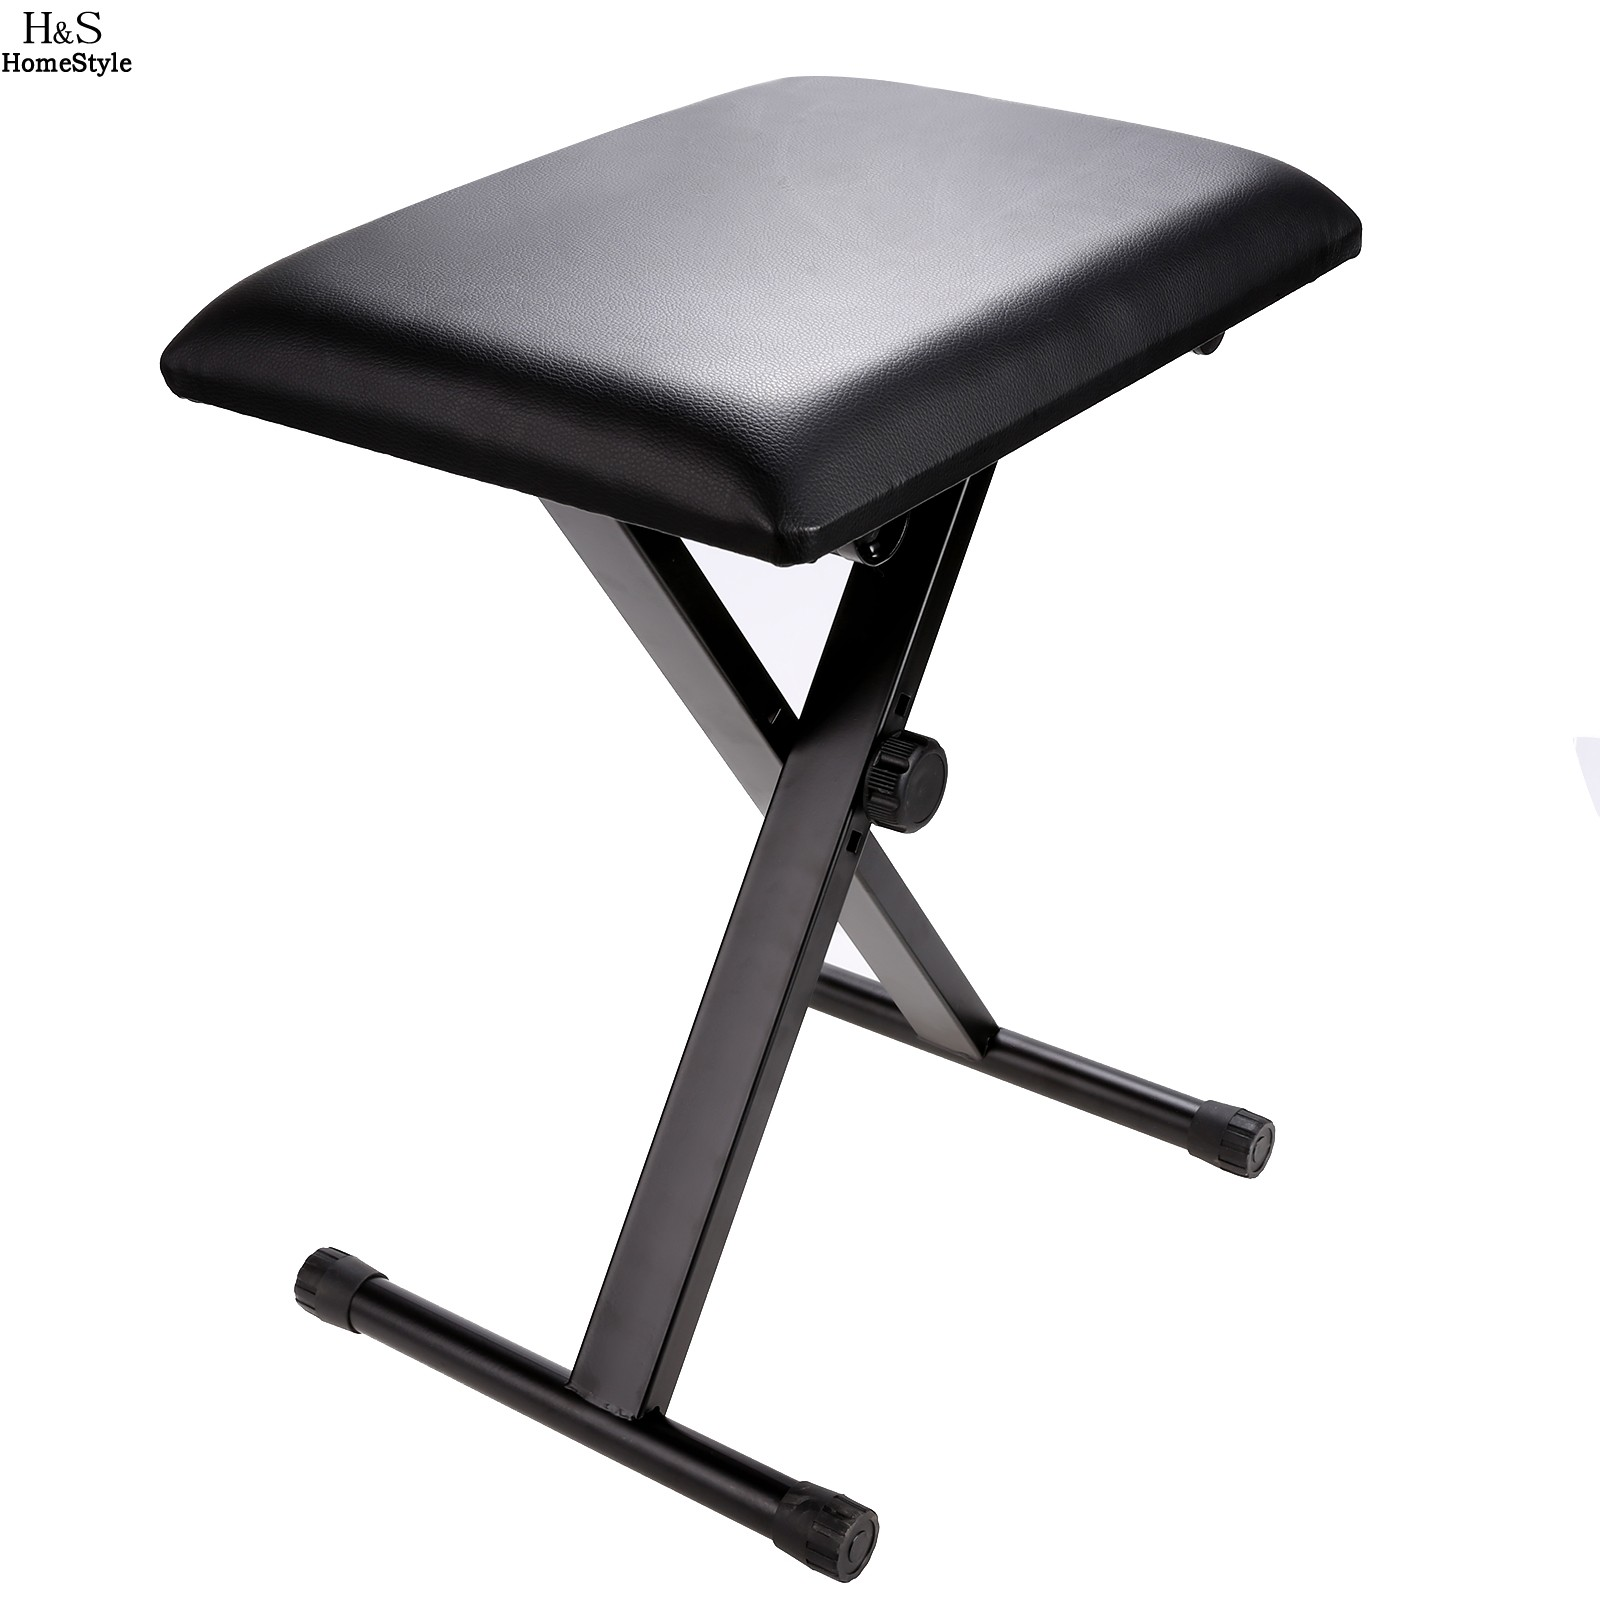 Homdox Folding Chair Adjustable Piano Keyboard Bench Leather Padded Seat Rubber Feet Folding  Stool Chair N30A 17 styles shoe stool solid wood fabric creative children small chair sofa round stool small wooden bench 30 30 27cm 32 32 27cm